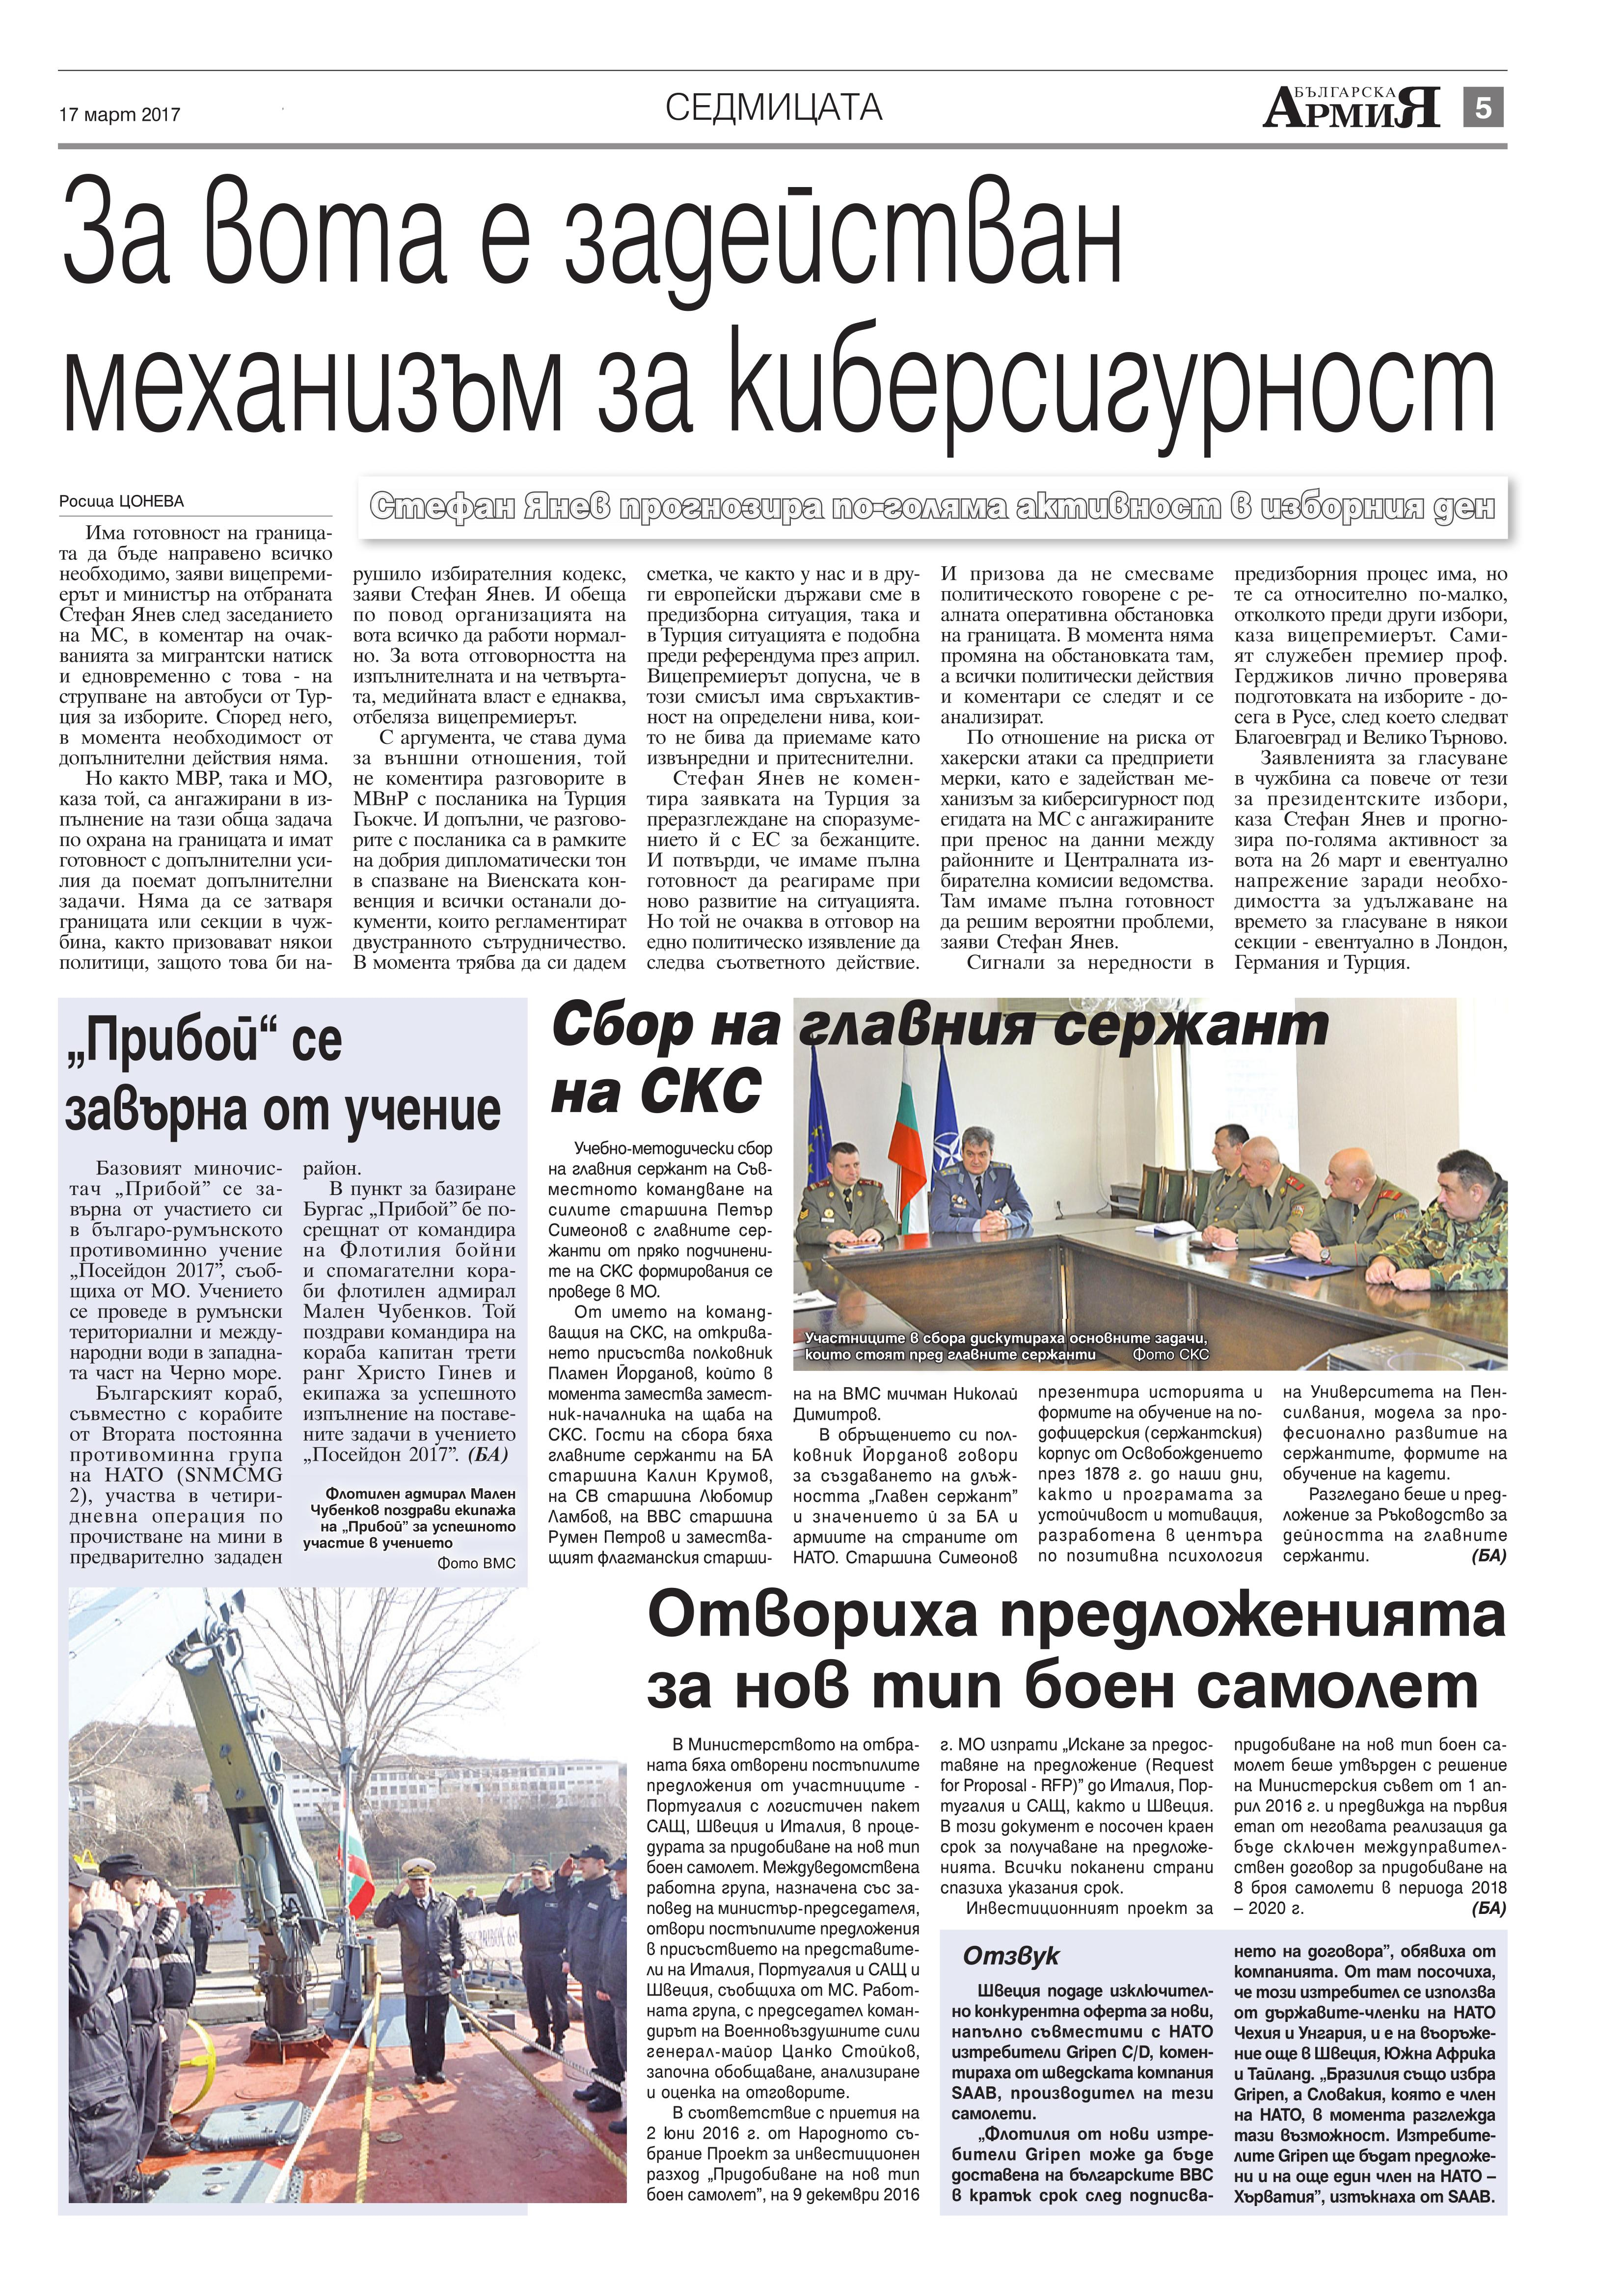 https://www.armymedia.bg/wp-content/uploads/2015/06/05.page1_-17.jpg